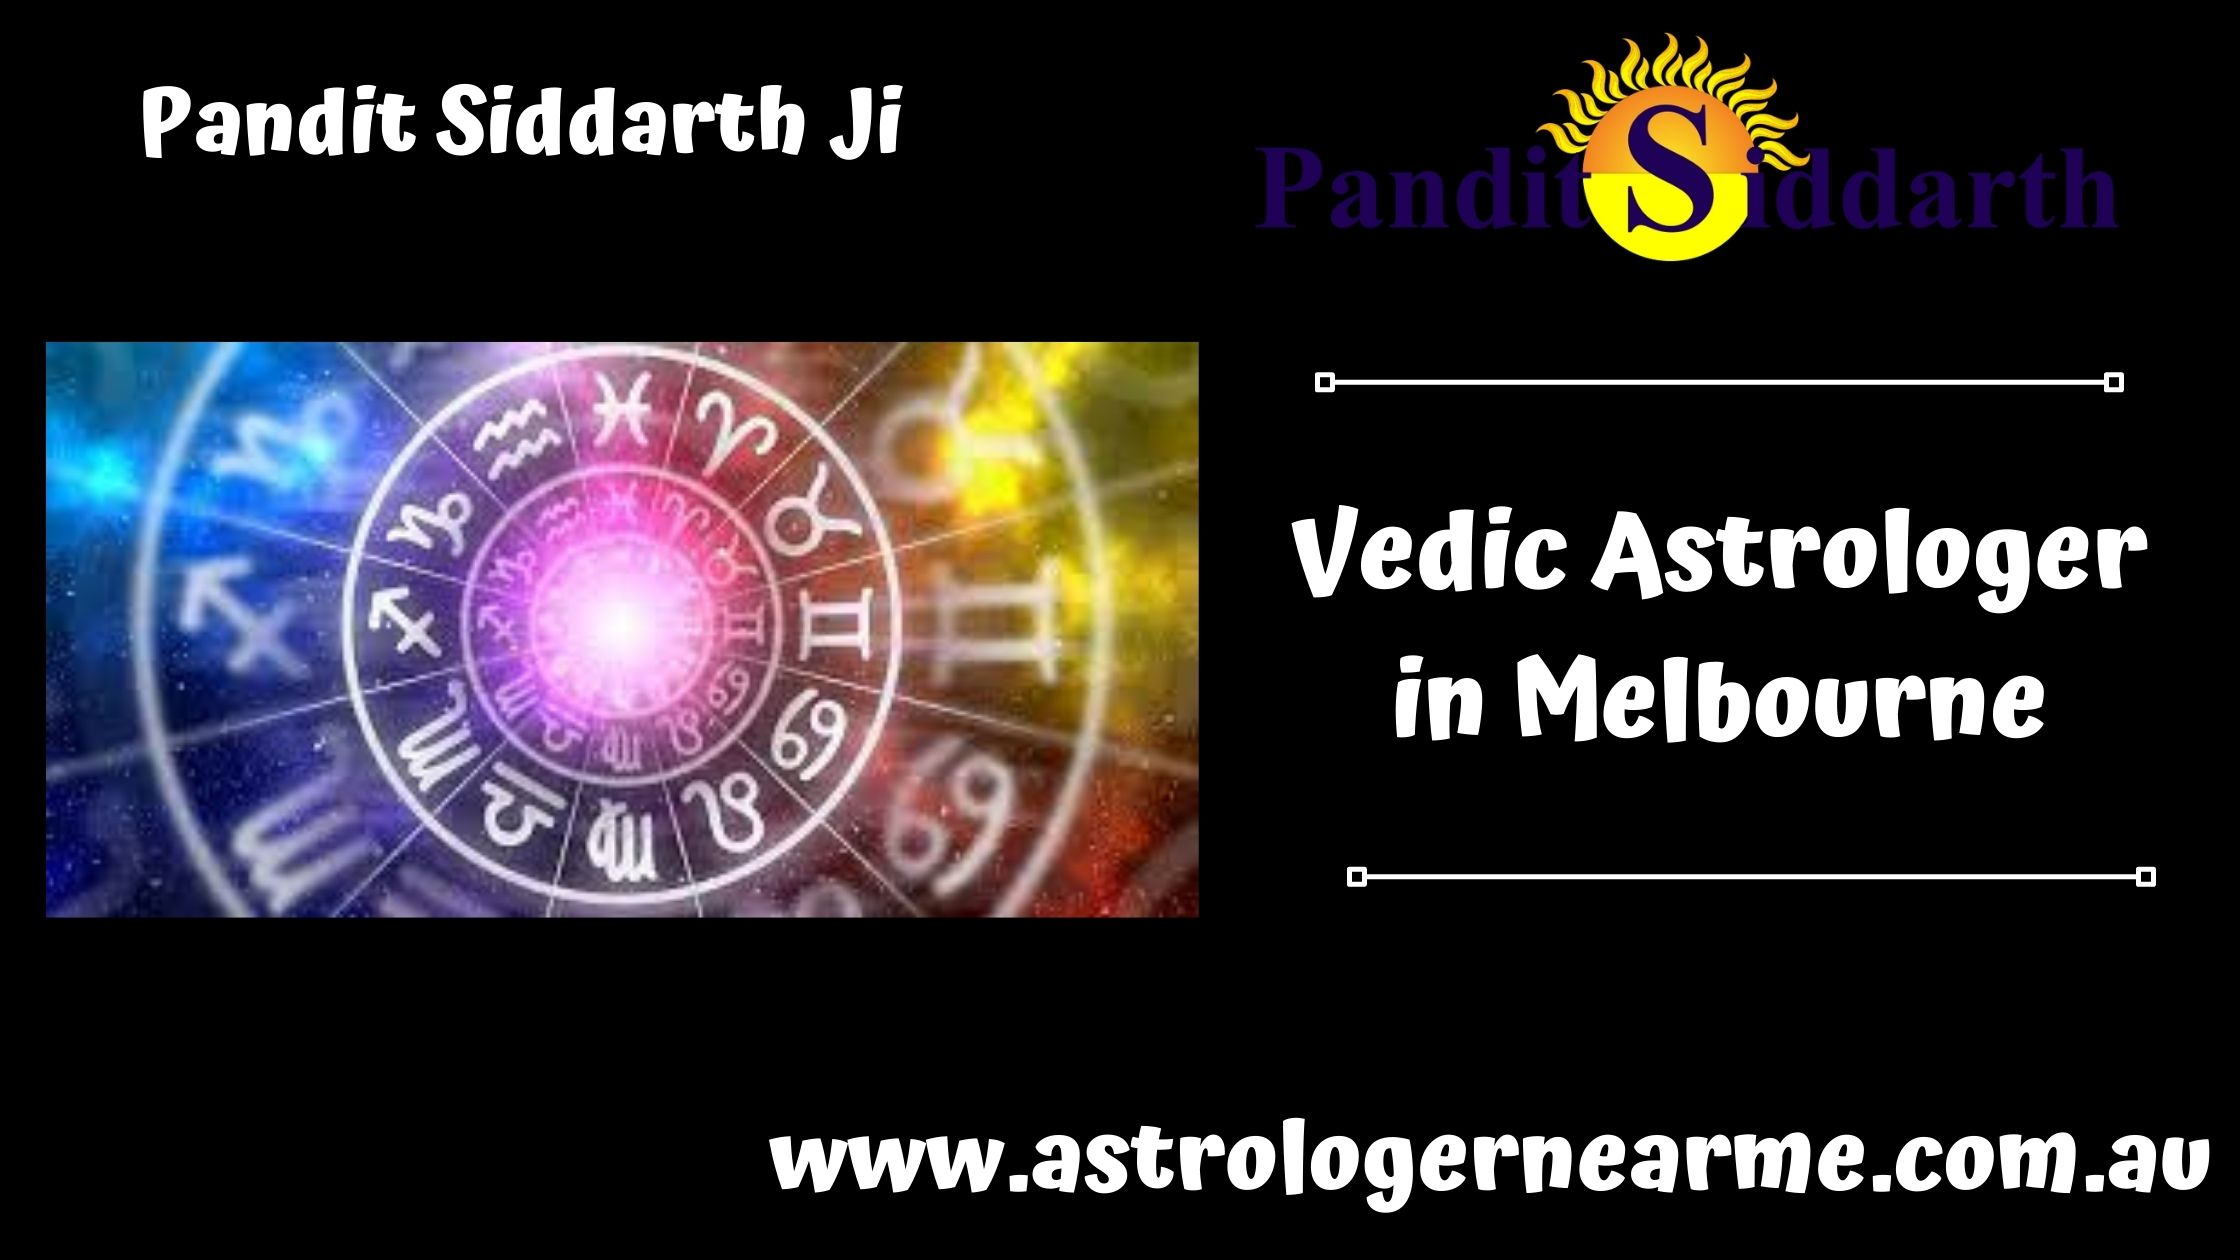 Contact for Top Vedic Astrologer in Melbourne